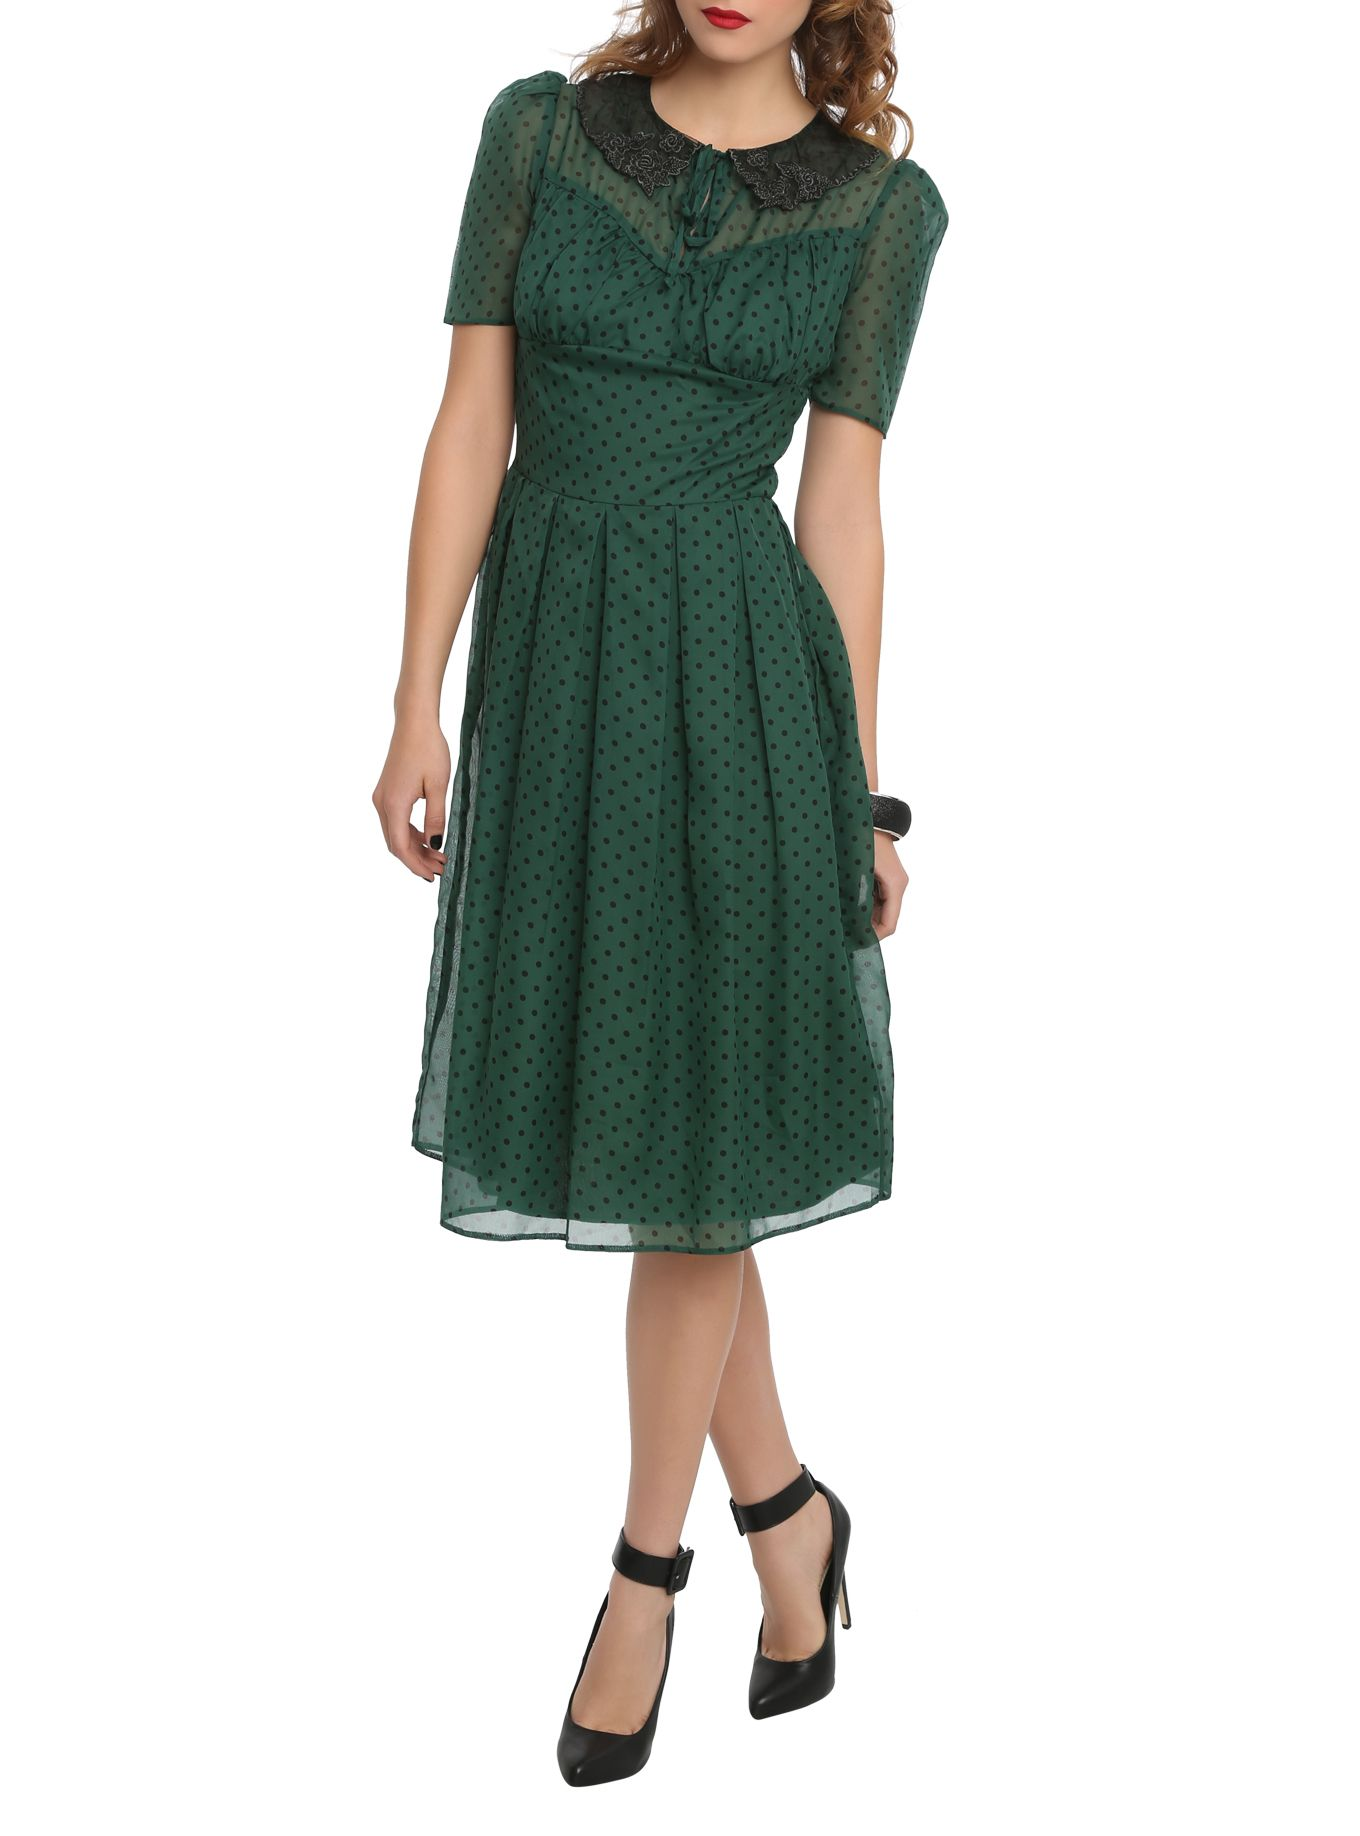 Green dress with lace overlay  Vintage style dress with chiffon overlay polka dot print sheer